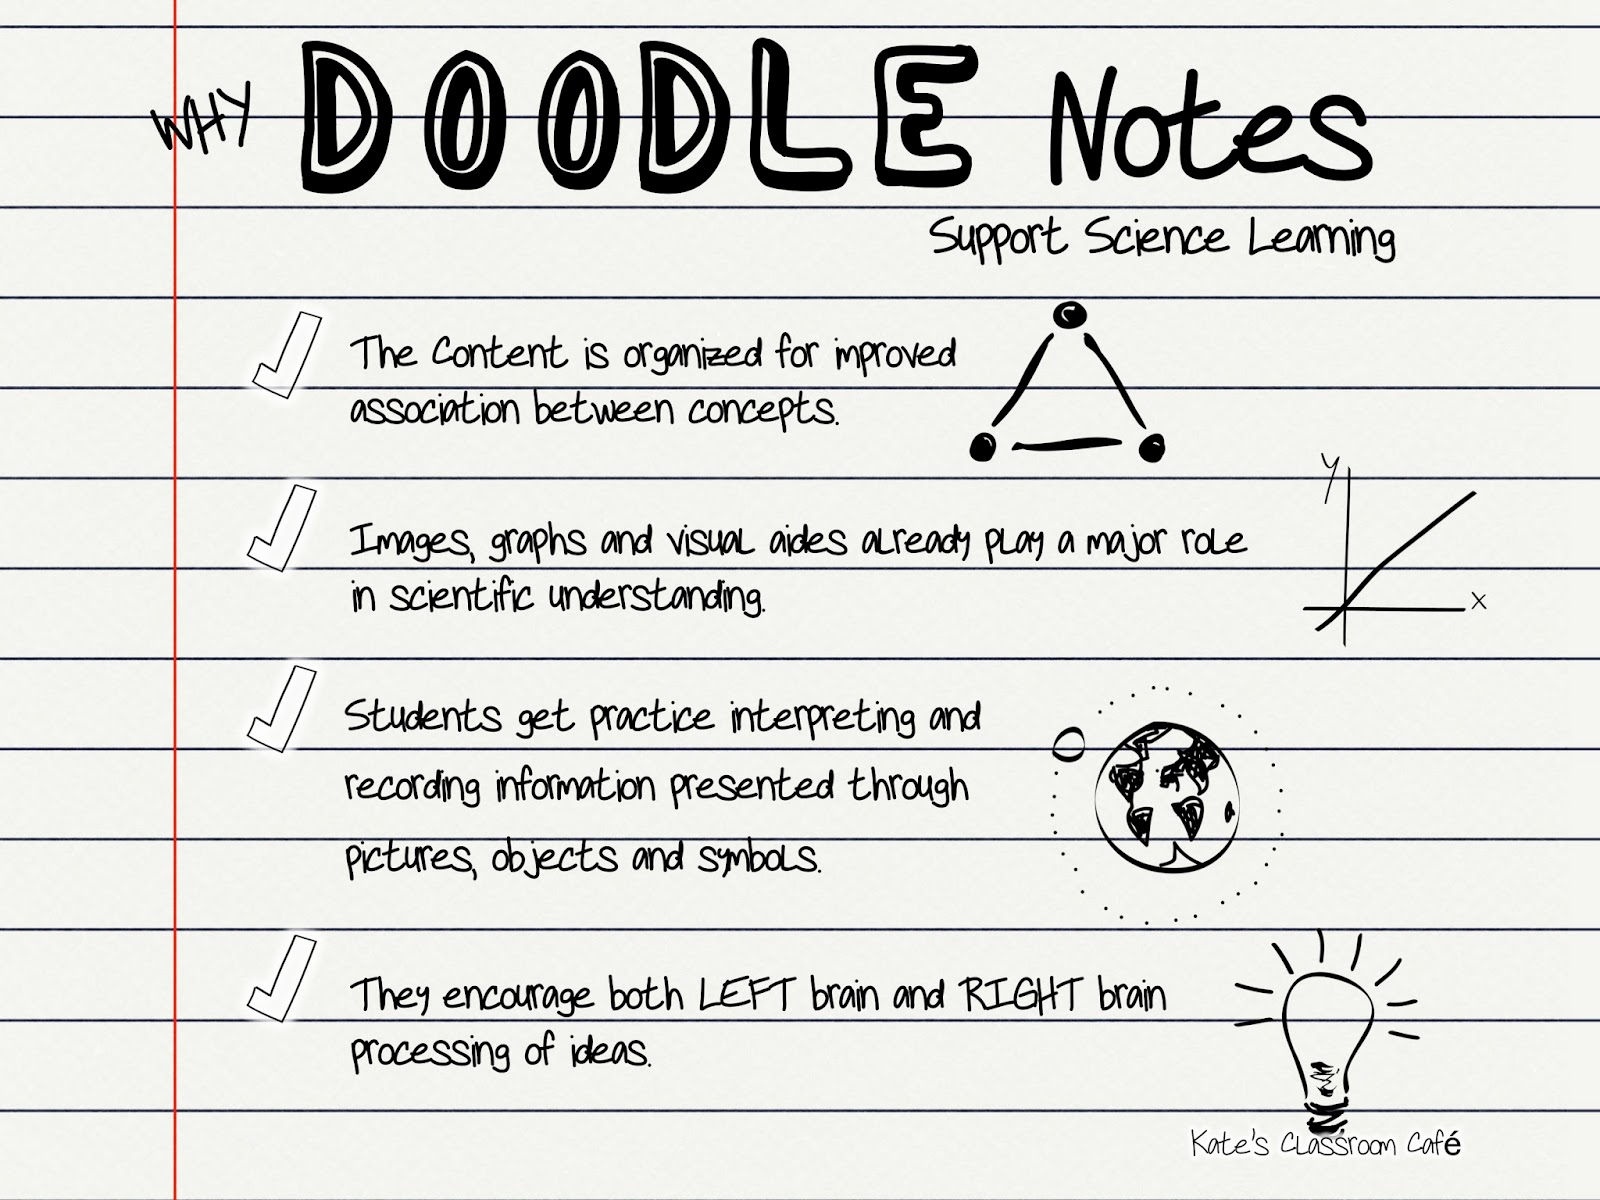 science notes Middle school notes offers completely free, detailed notes to 7th and 8th grade students seeking help for their subjects and wanting to ace quizes, tests, midterms.